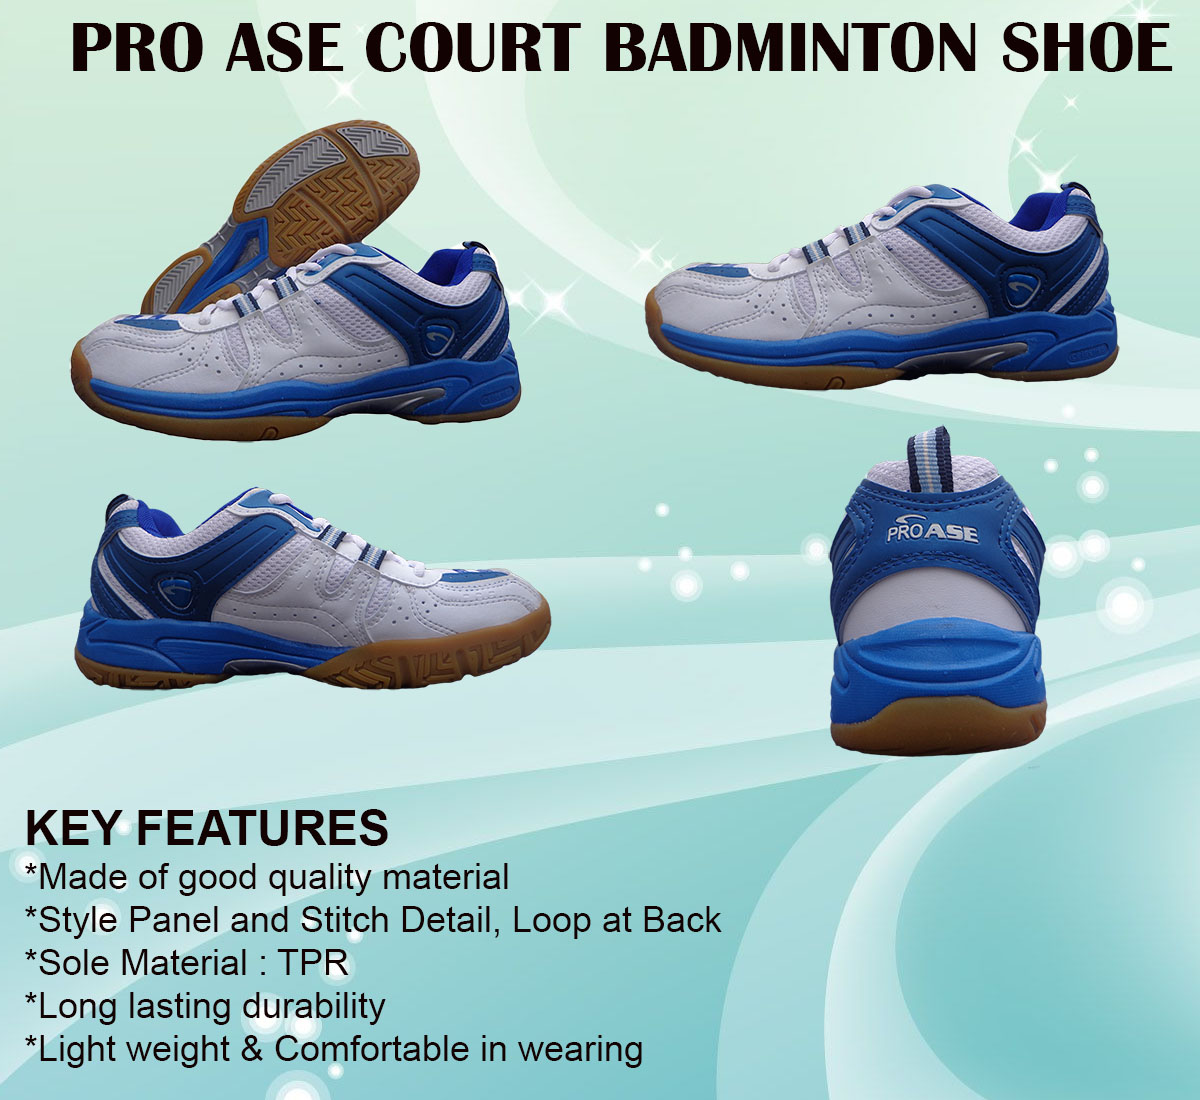 PRO ASE COURT BADMINTON SHOE_blue & white